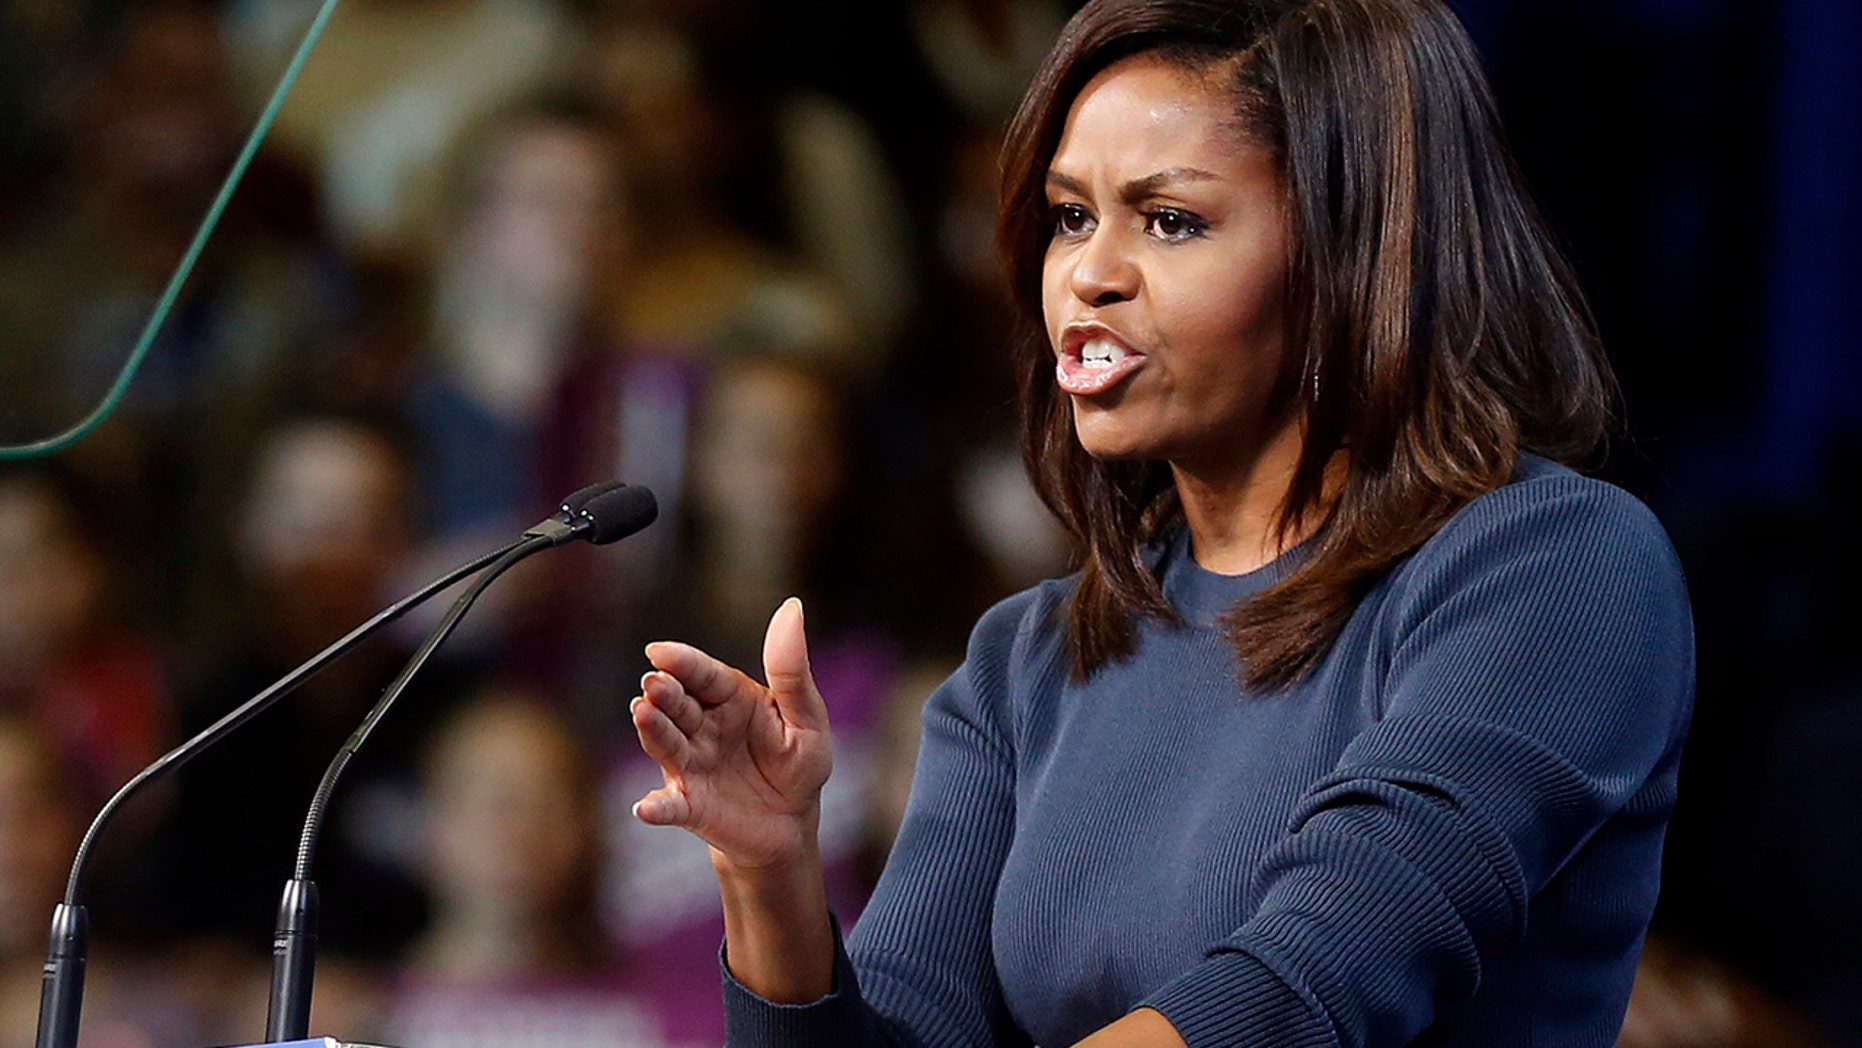 Oct. 13, 2016: First lady Michelle Obama speaks during a campaign rally for Democratic presidential candidate Hillary Clinton in Manchester, N.H.